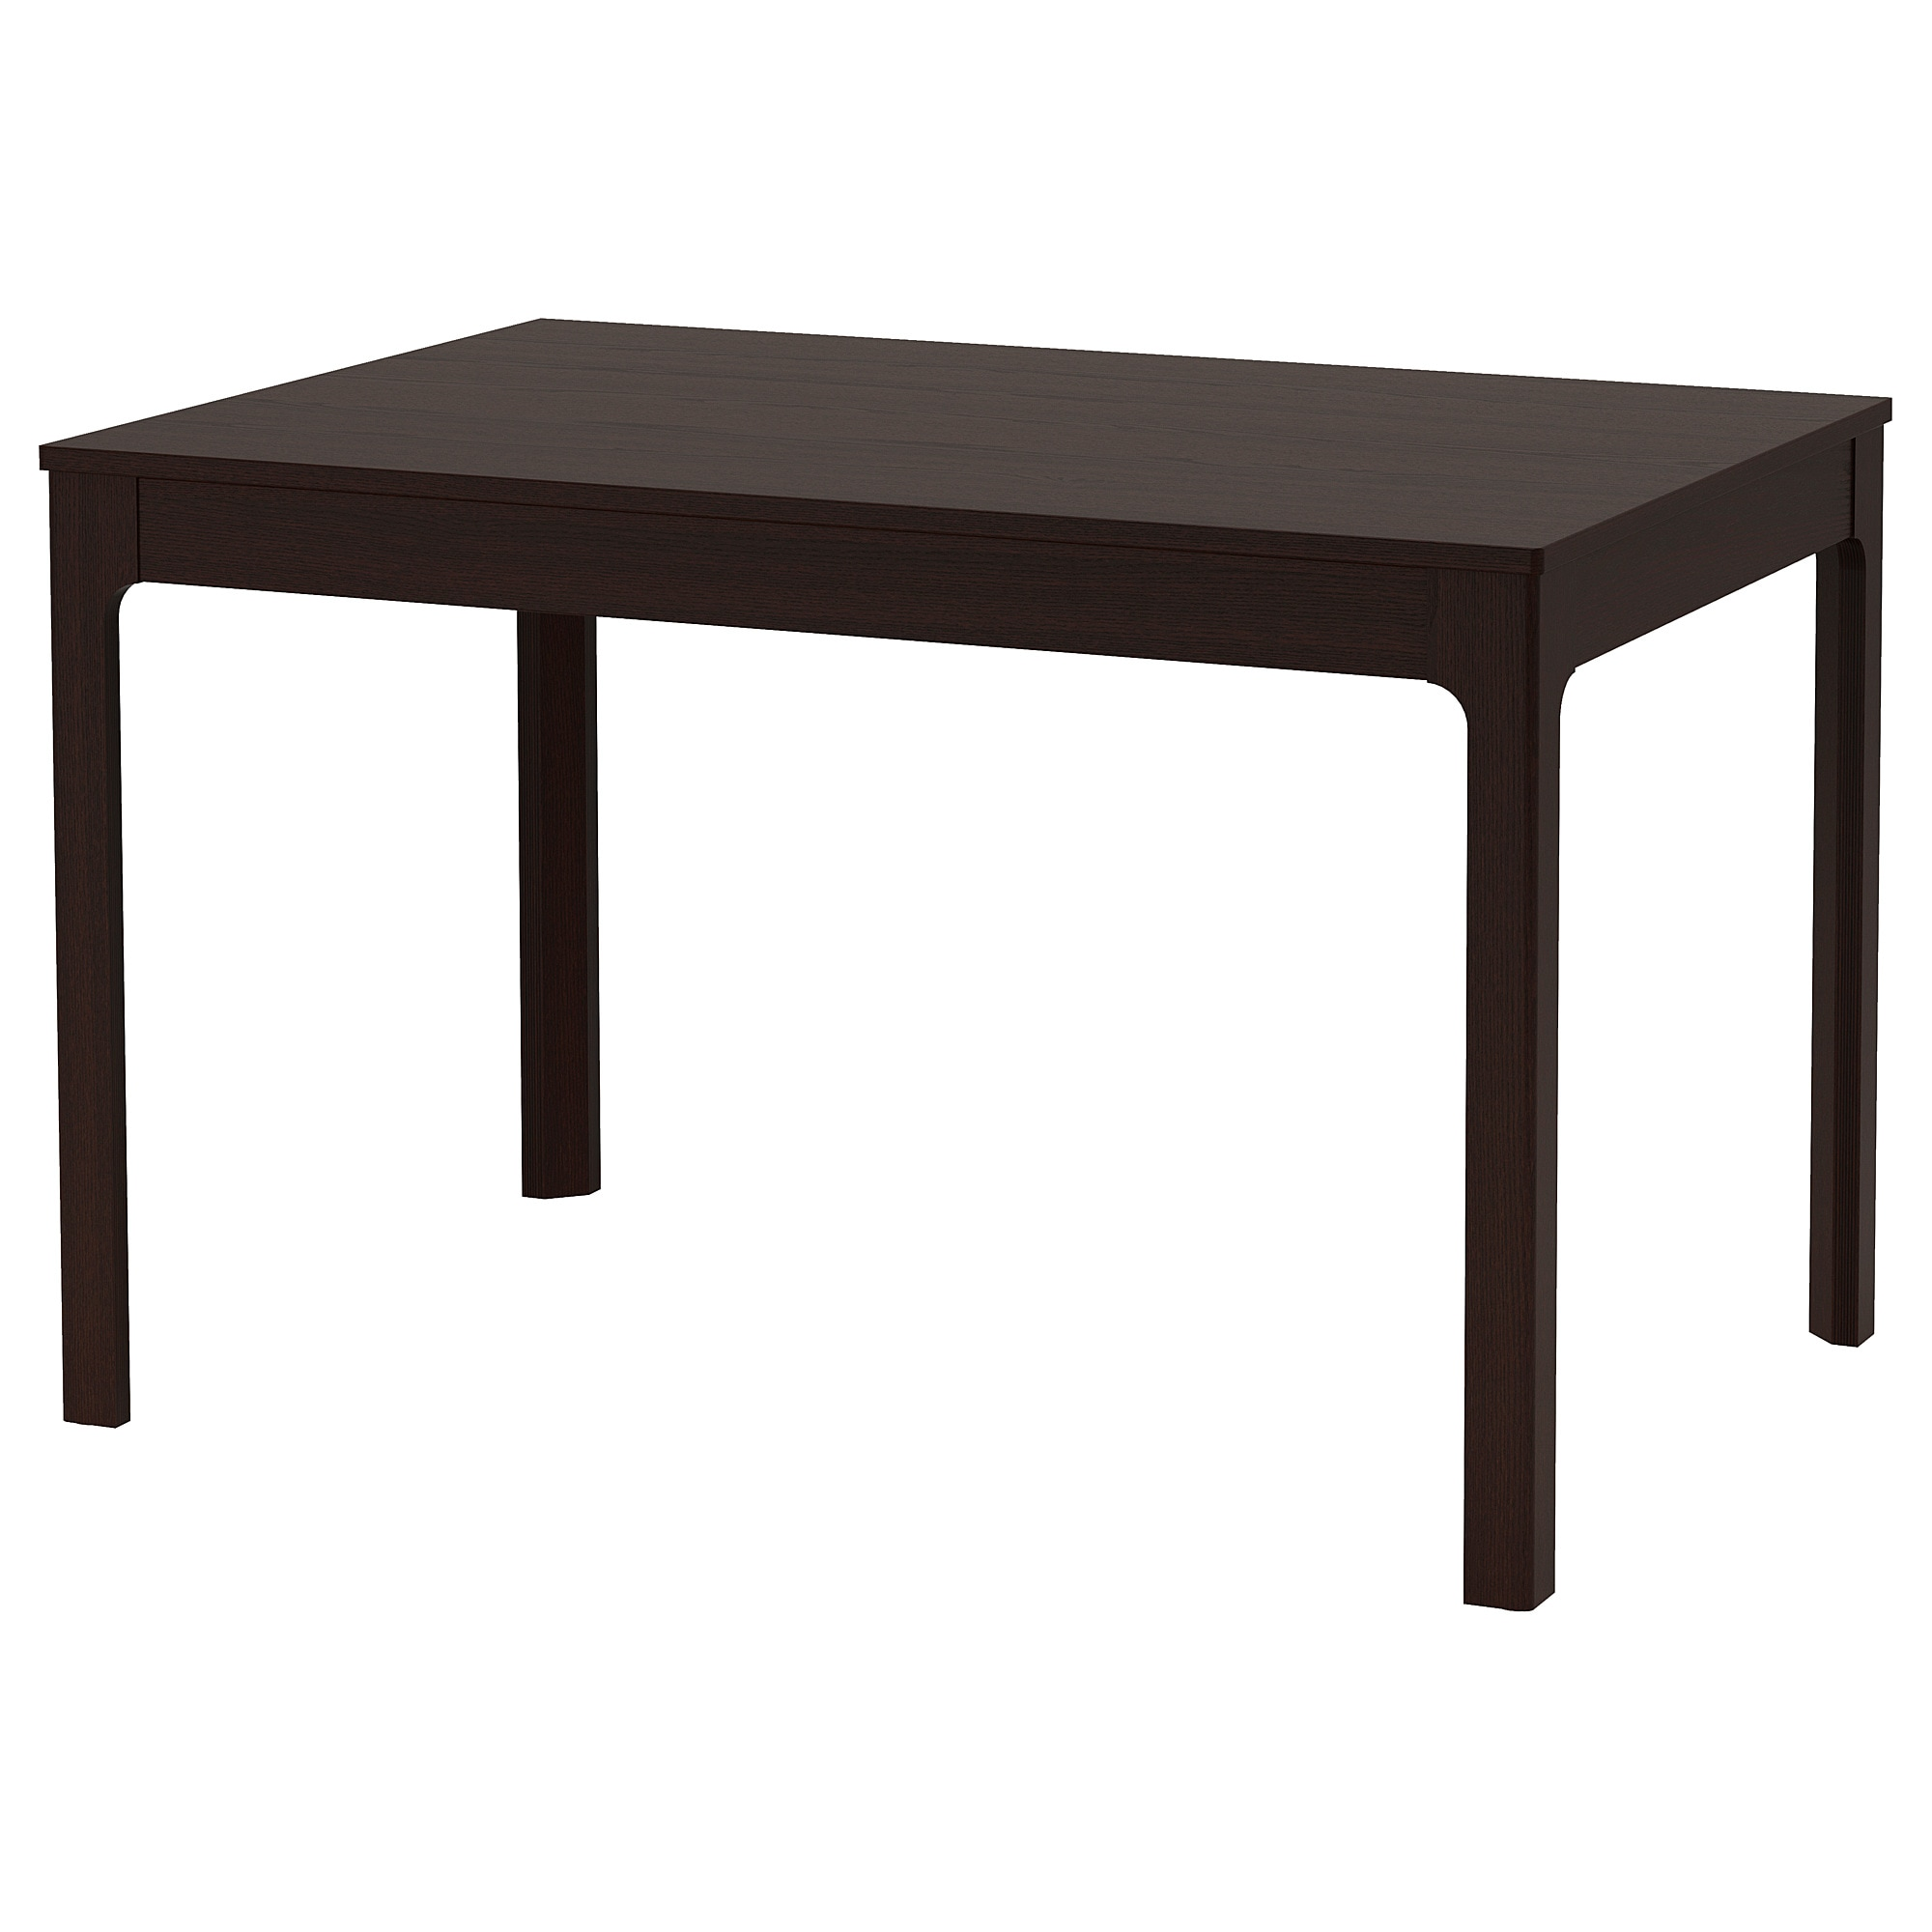 teak outdoor furniture sydney cheap. ekedalen extendable table, dark brown teak outdoor furniture sydney cheap